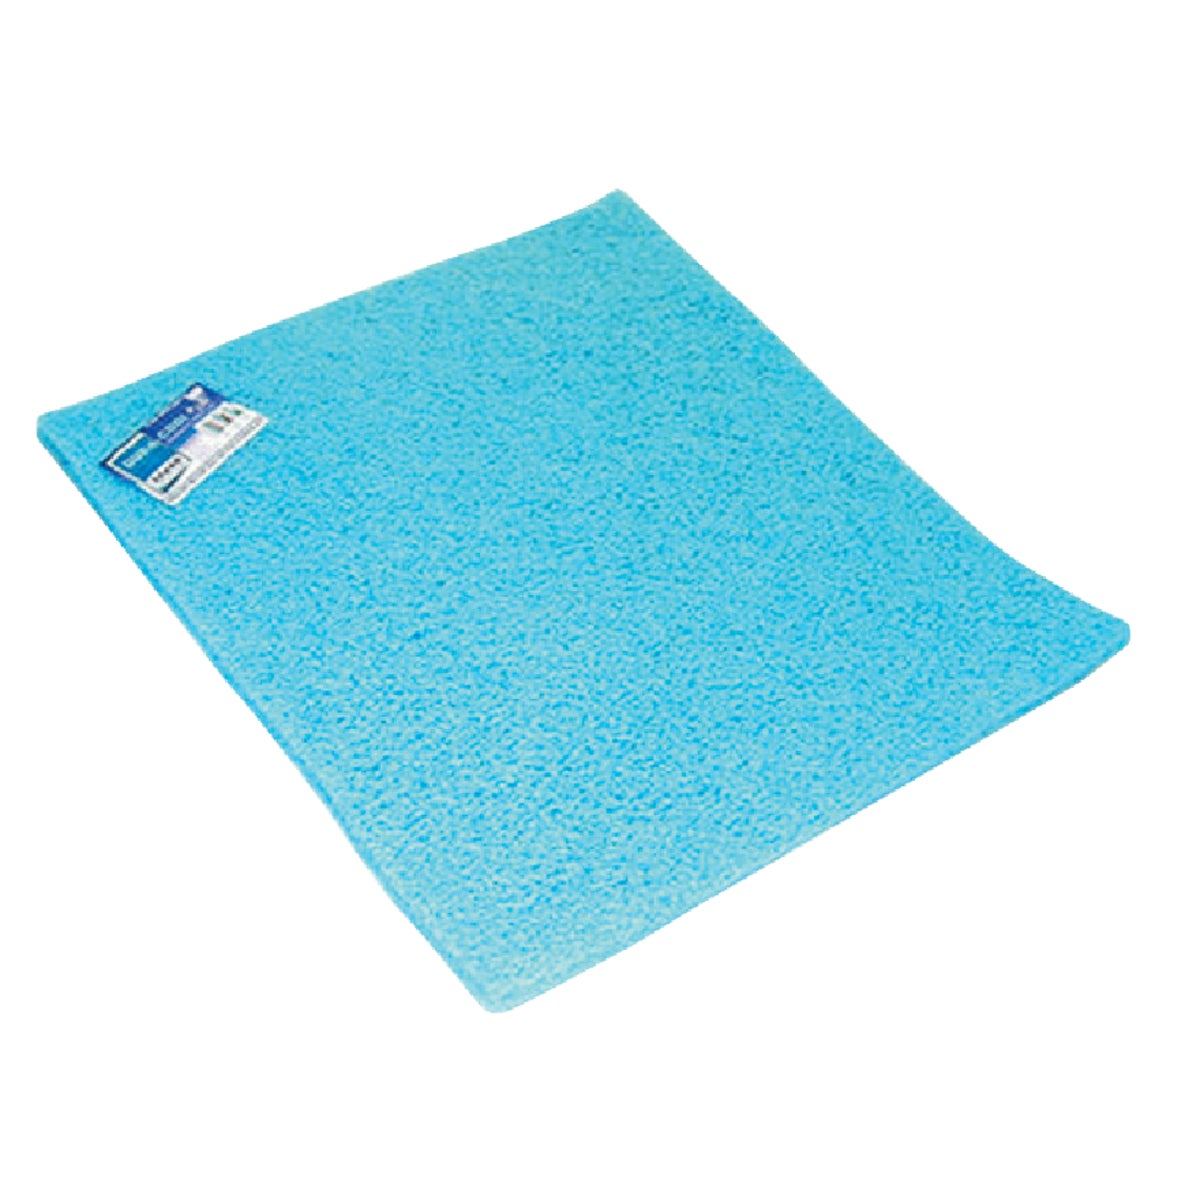 29X30 DURA-COOL PAD - 3073 by Dial Manufacturing